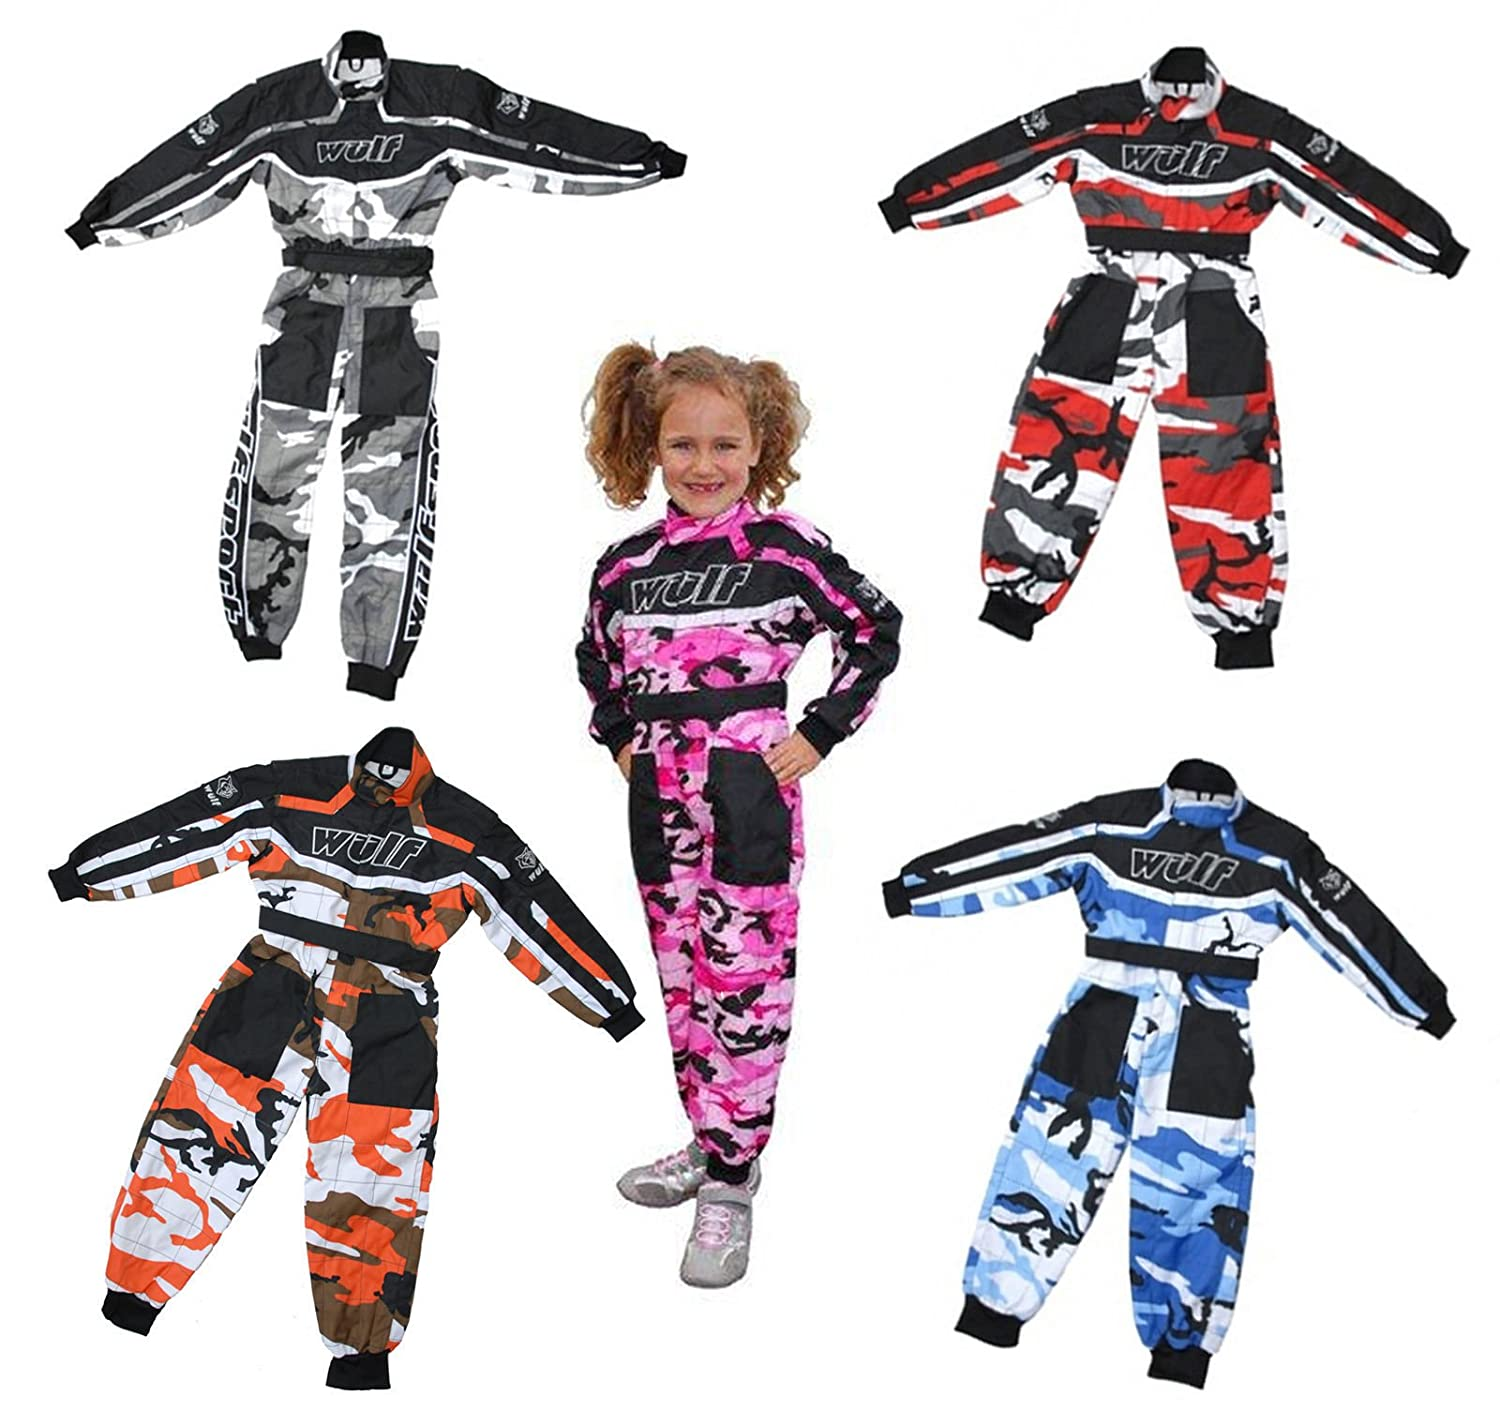 Wulf WULFSPORT Kids Camo Race Suit Overalls Motocross Lt PW Go